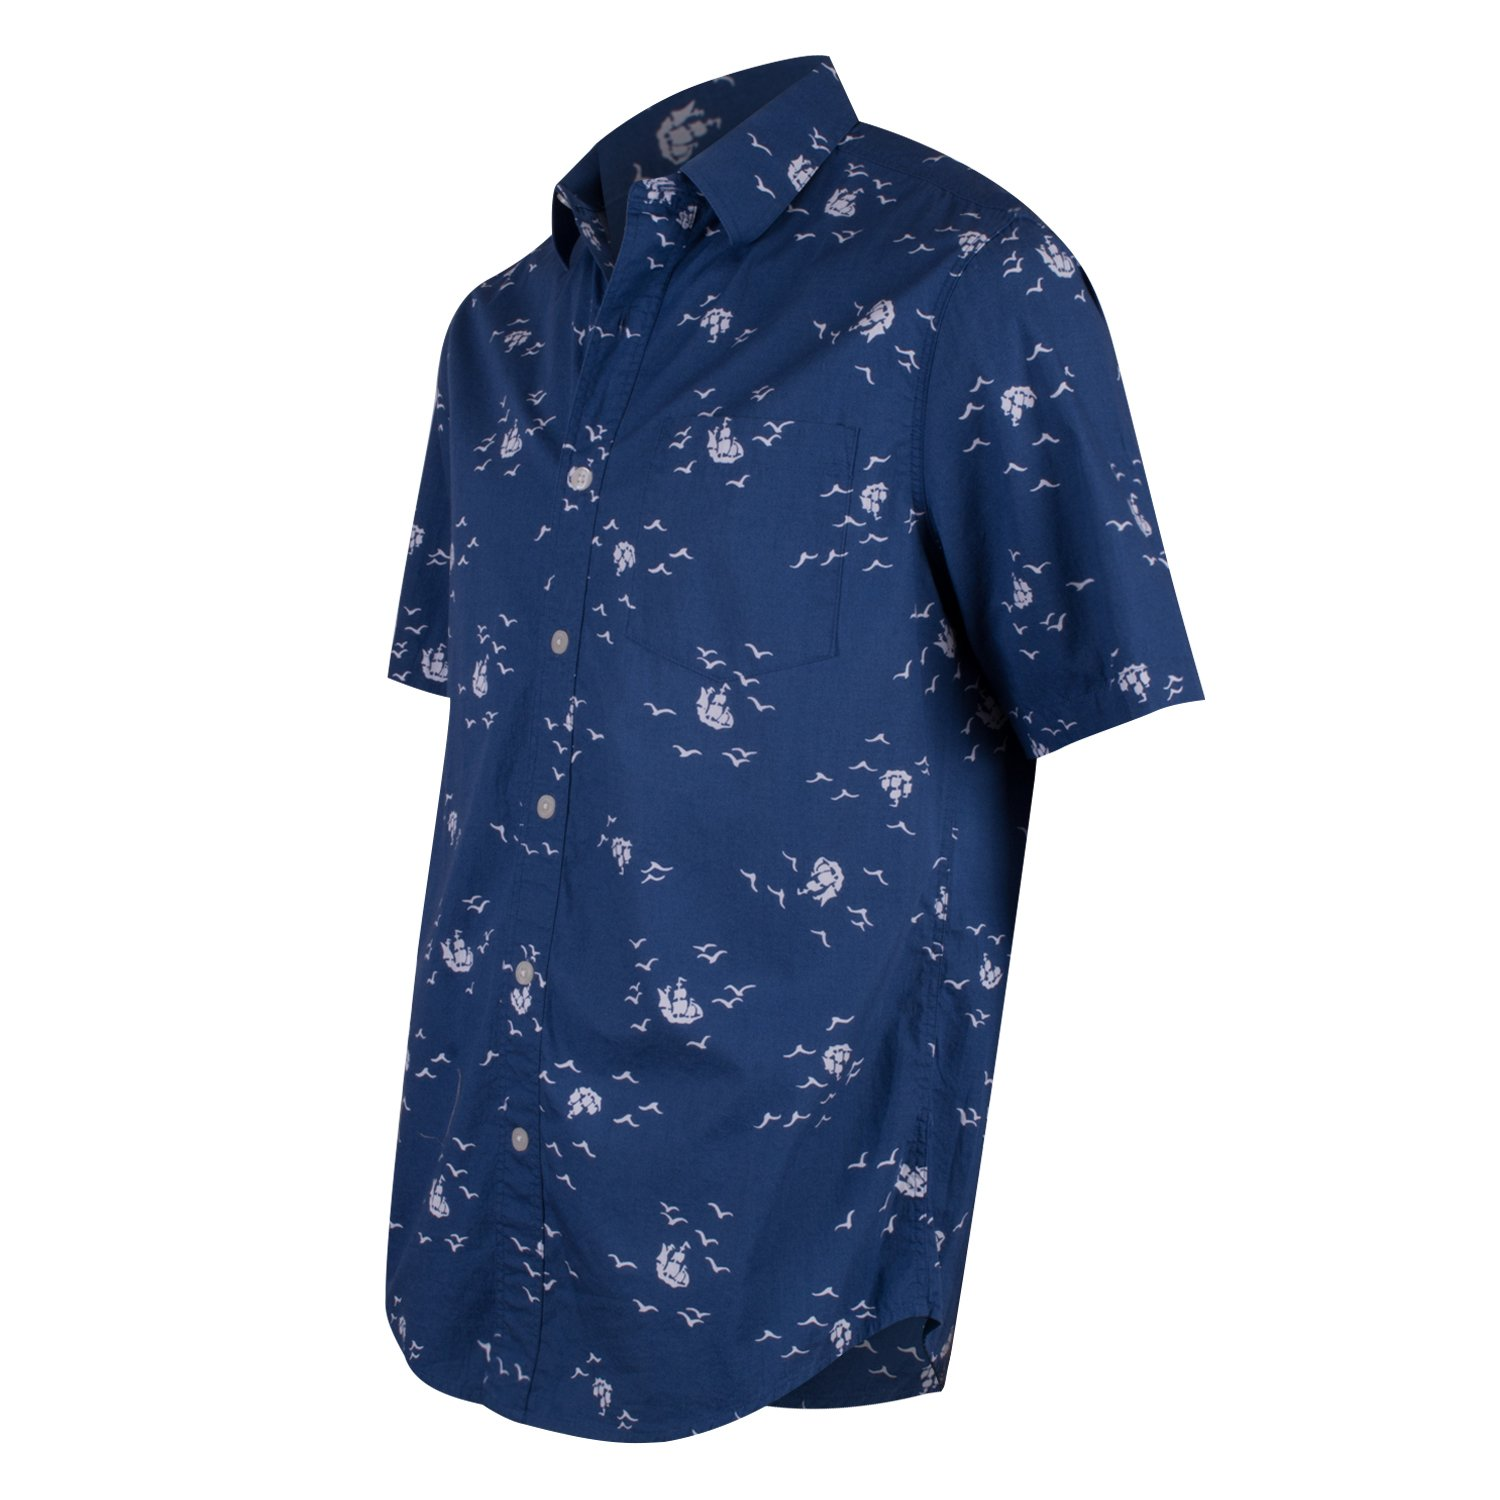 4d2261f99a4f Campia Moda Men's Washed Cotton Modern Fit Print Shirt (Navy Abstract Bird  and Ship Print, S) at Amazon Men's Clothing store: